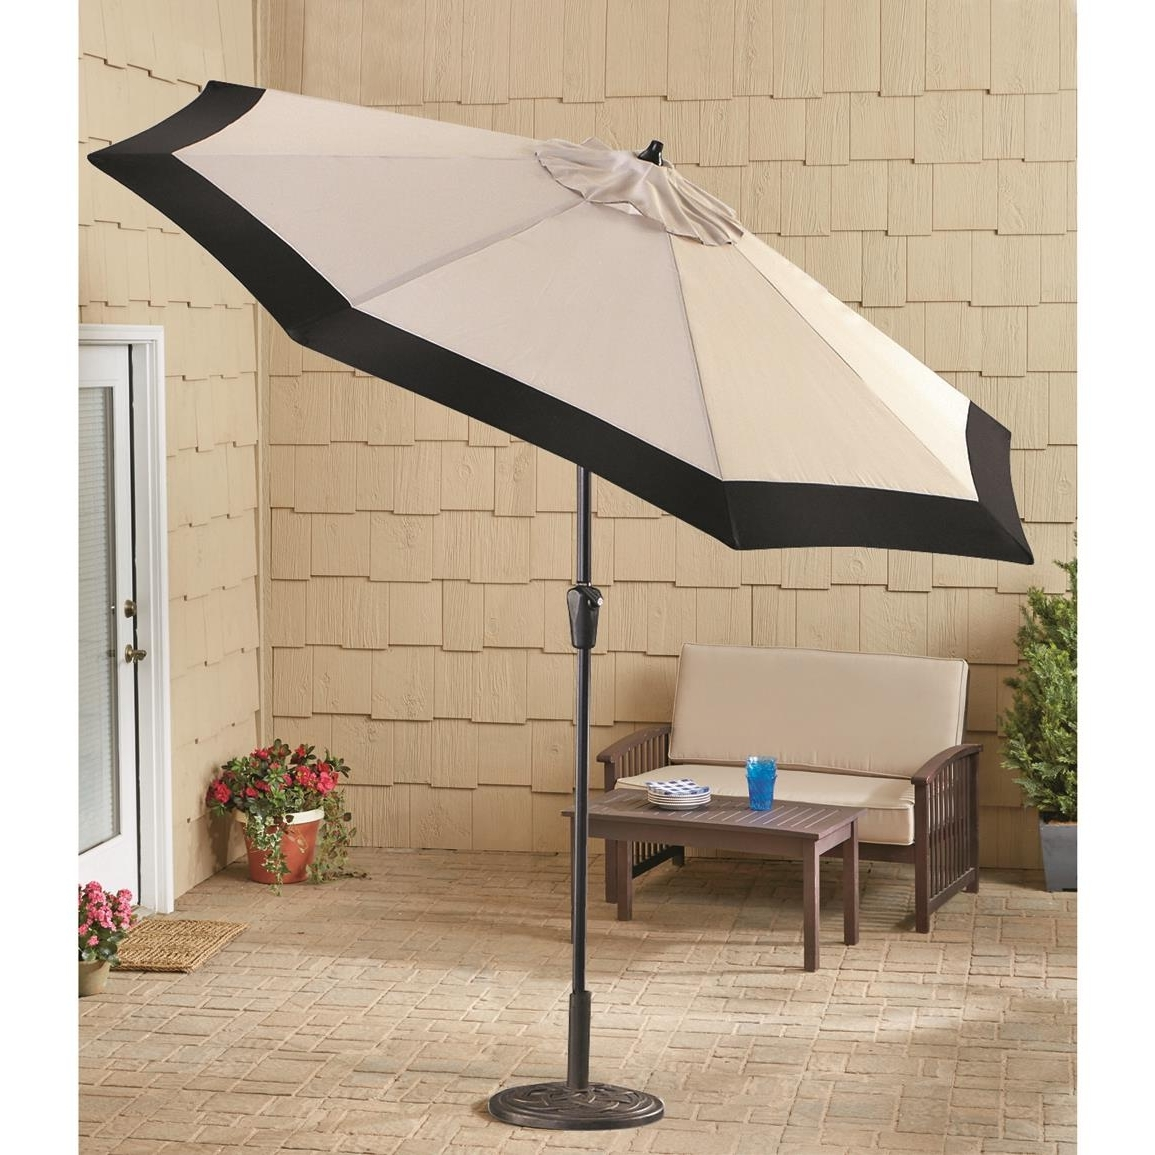 Well Known Castlecreek 9' Two Tone Deluxe Market Patio Umbrella, Khaki / Black With Deluxe Patio Umbrellas (View 15 of 20)